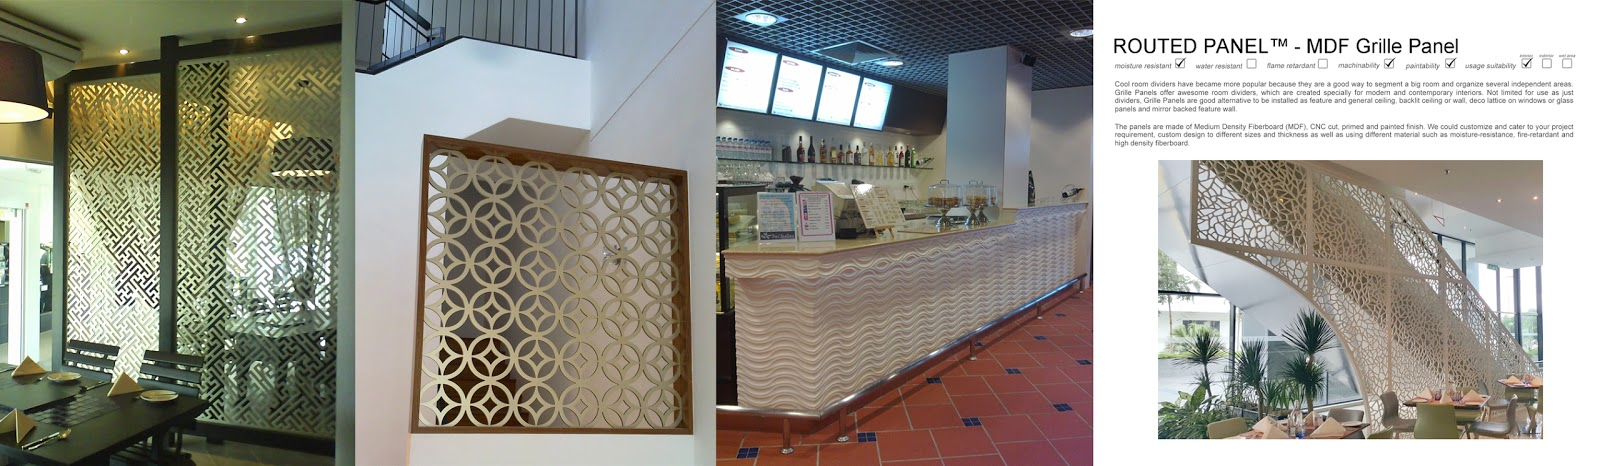 Decorative Partition Wall Widely Use As Room Dividers Become More And More  Popular, Because They Are The Cool Way To Segment A Big Room And Organize  Several ...